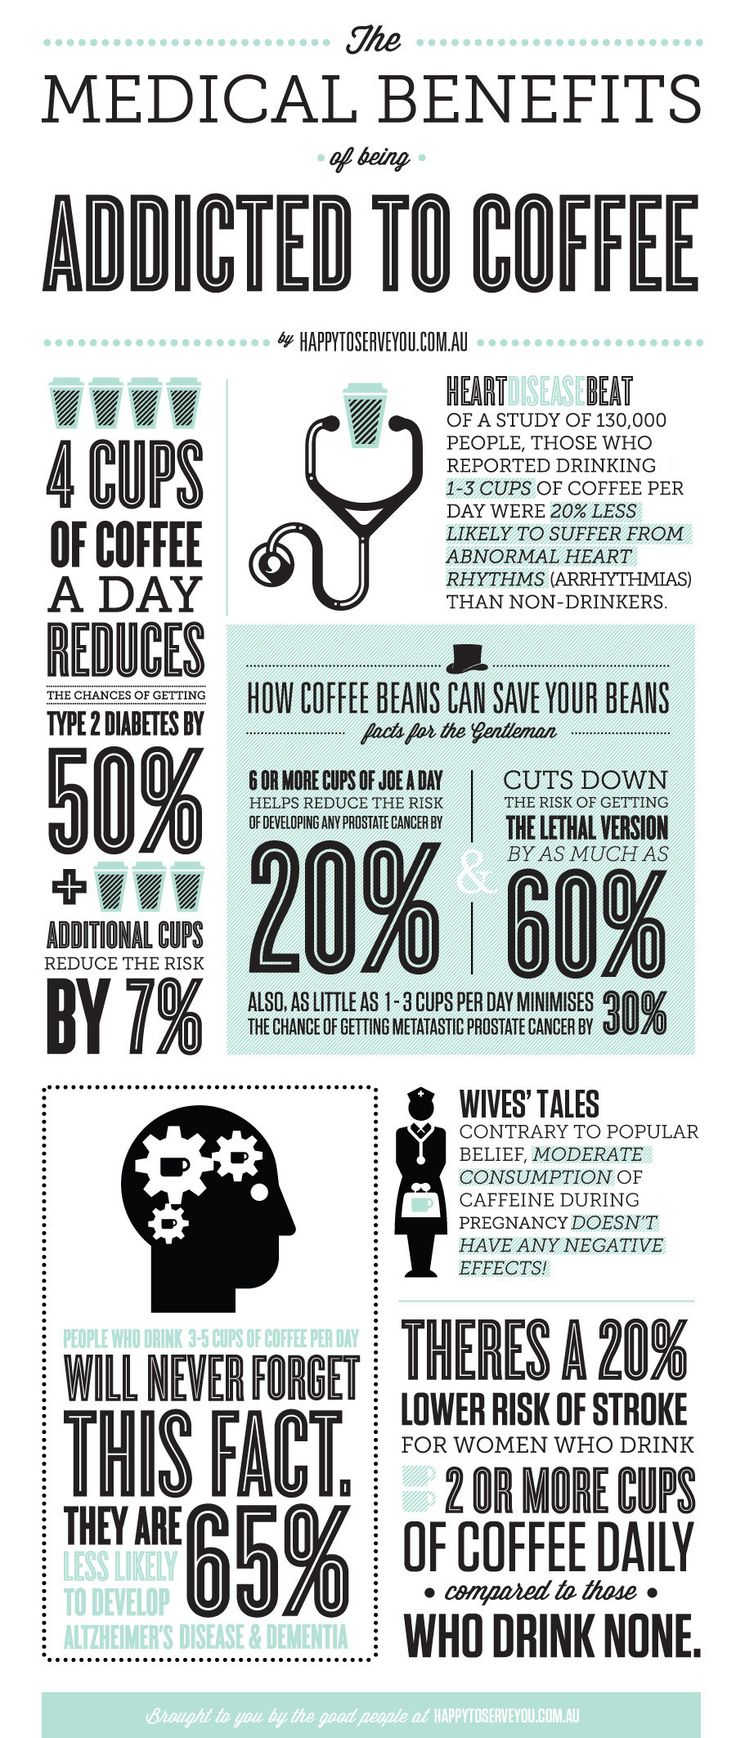 Addicted to Coffee -- Brought to you by Coffee Brewers of Melbourne. Awesome cause I enjoy a good coffee :)